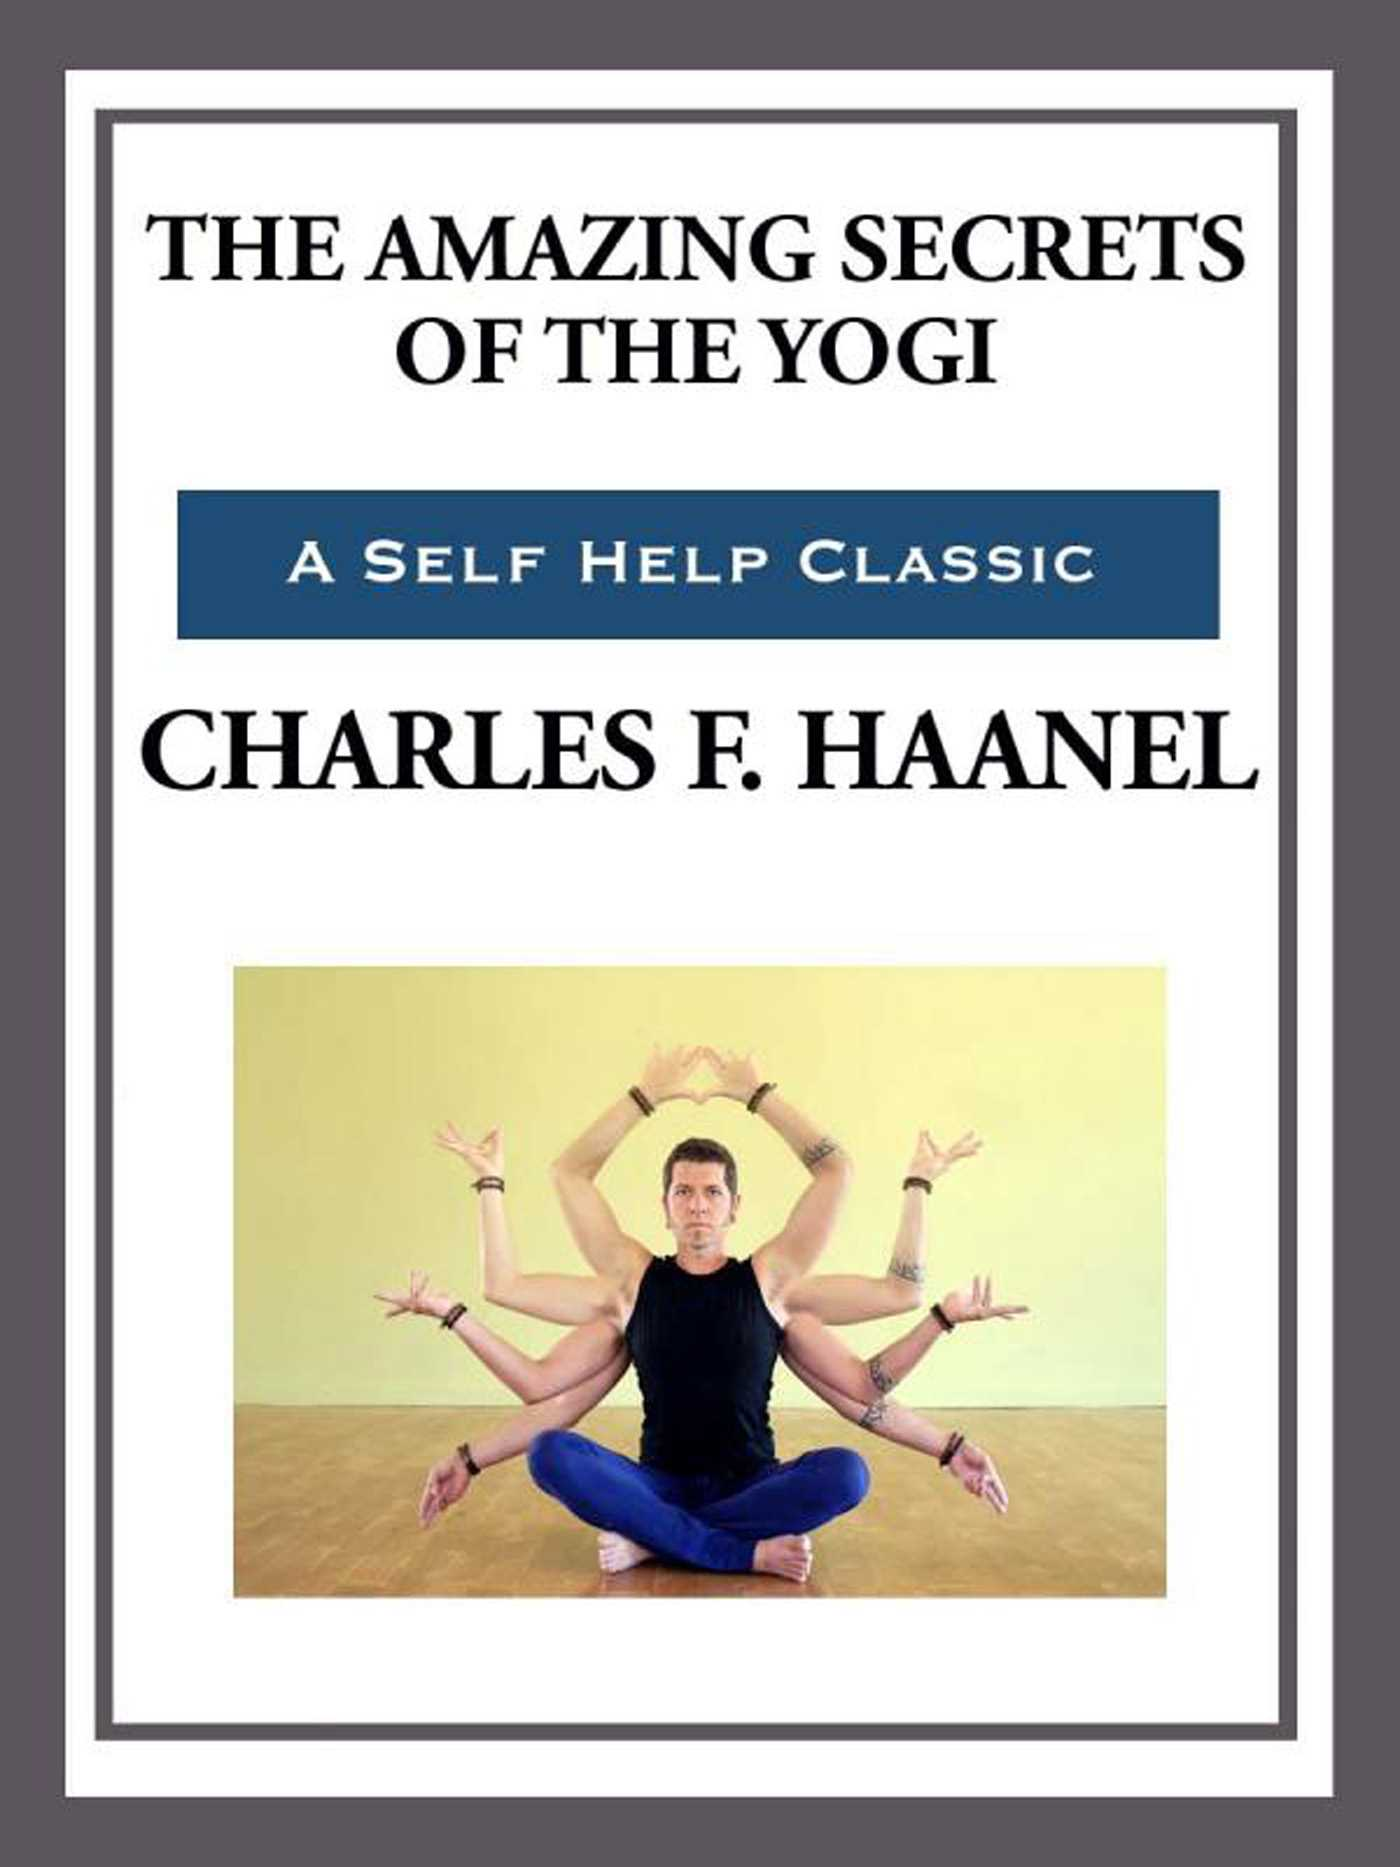 The amazing secrets of the yogi ebook by charles f haanel the amazing secrets of the yogi 9781625588494 hr fandeluxe Images